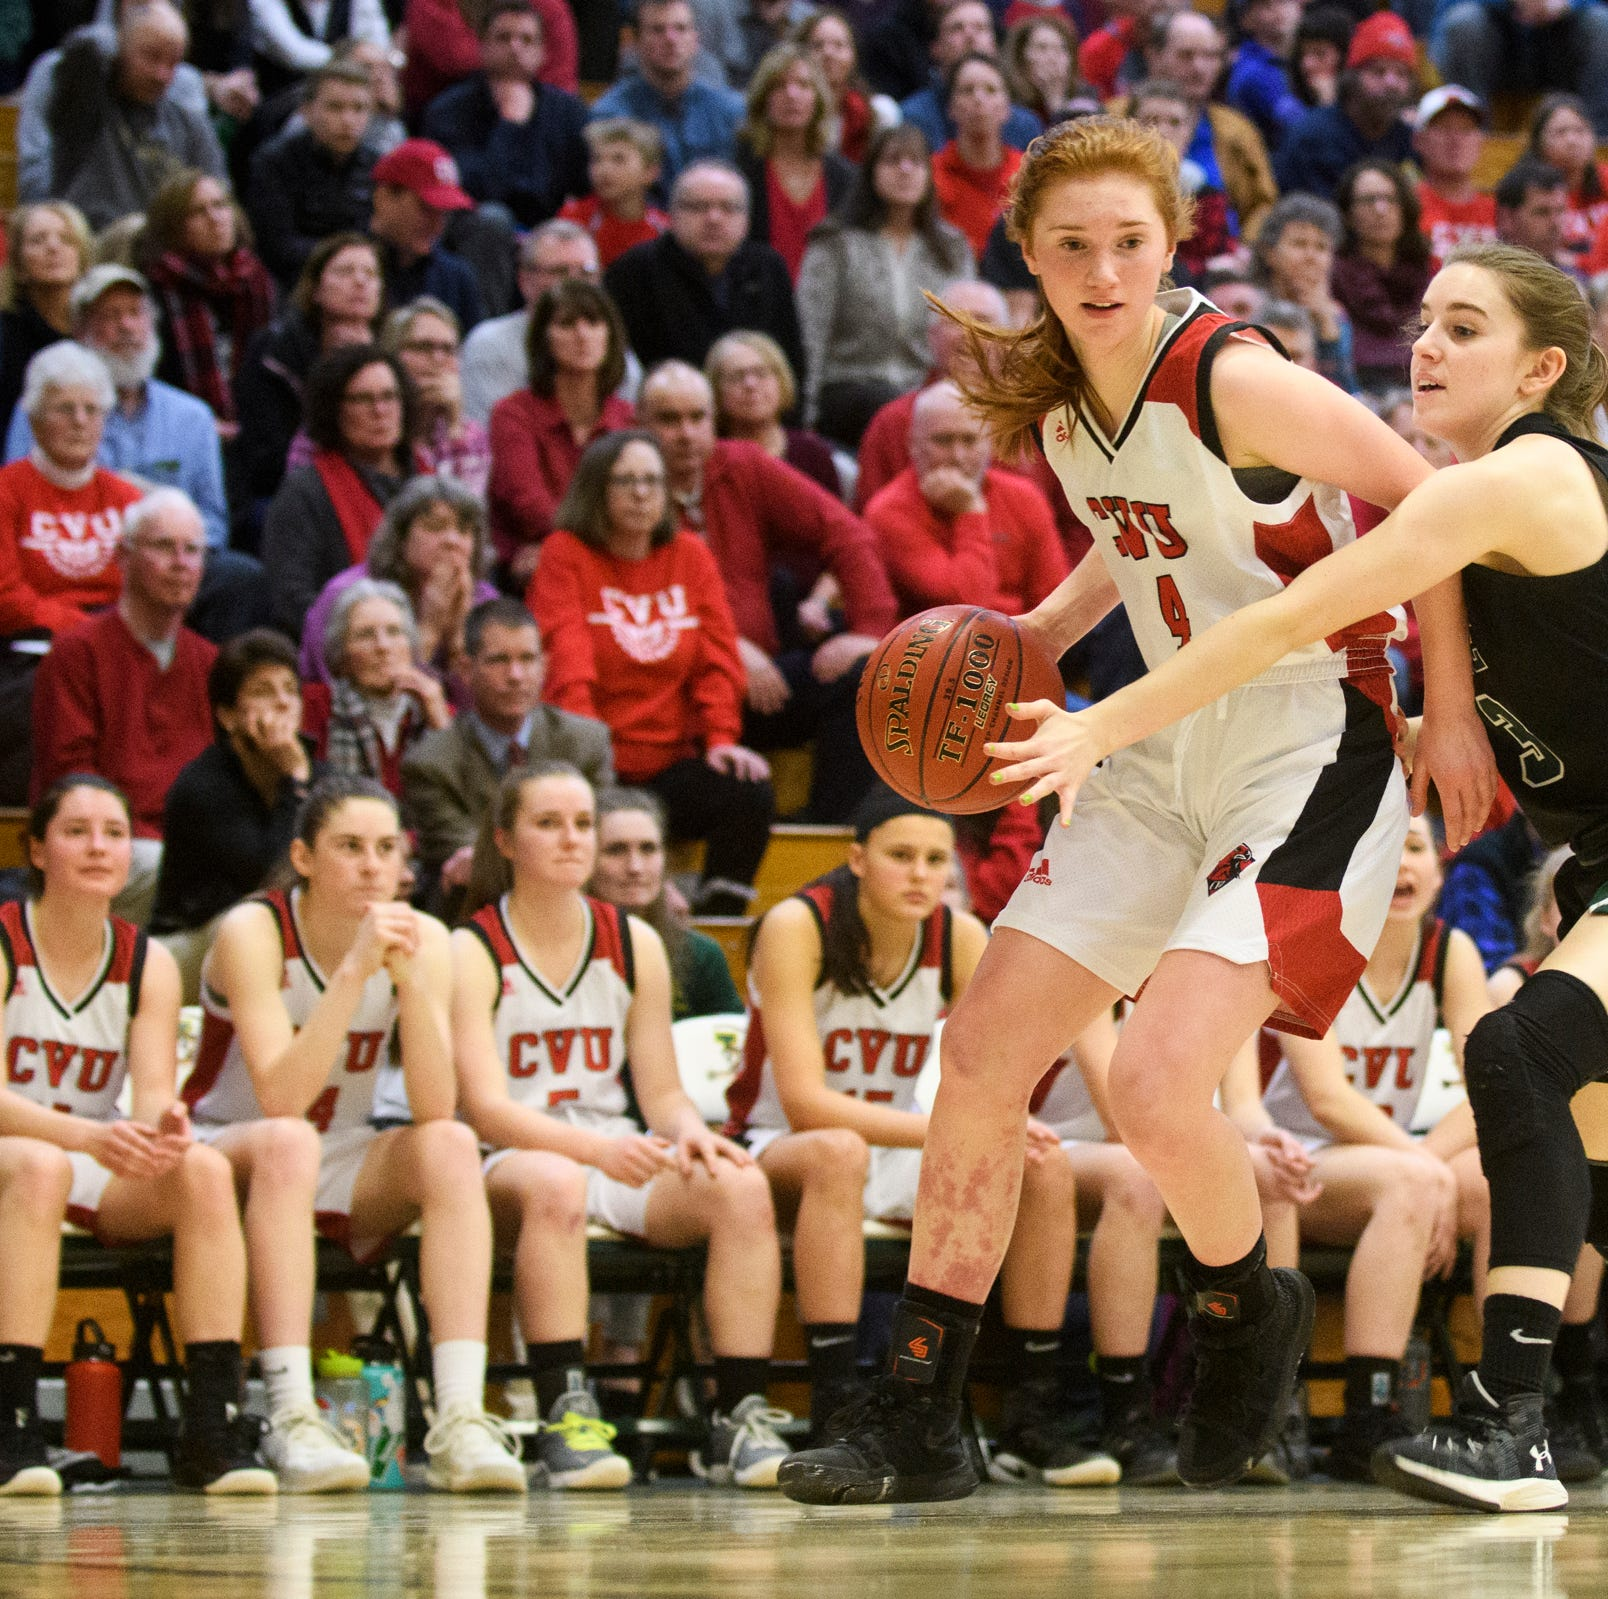 29th annual Free Press All-State Girls Basketball Team